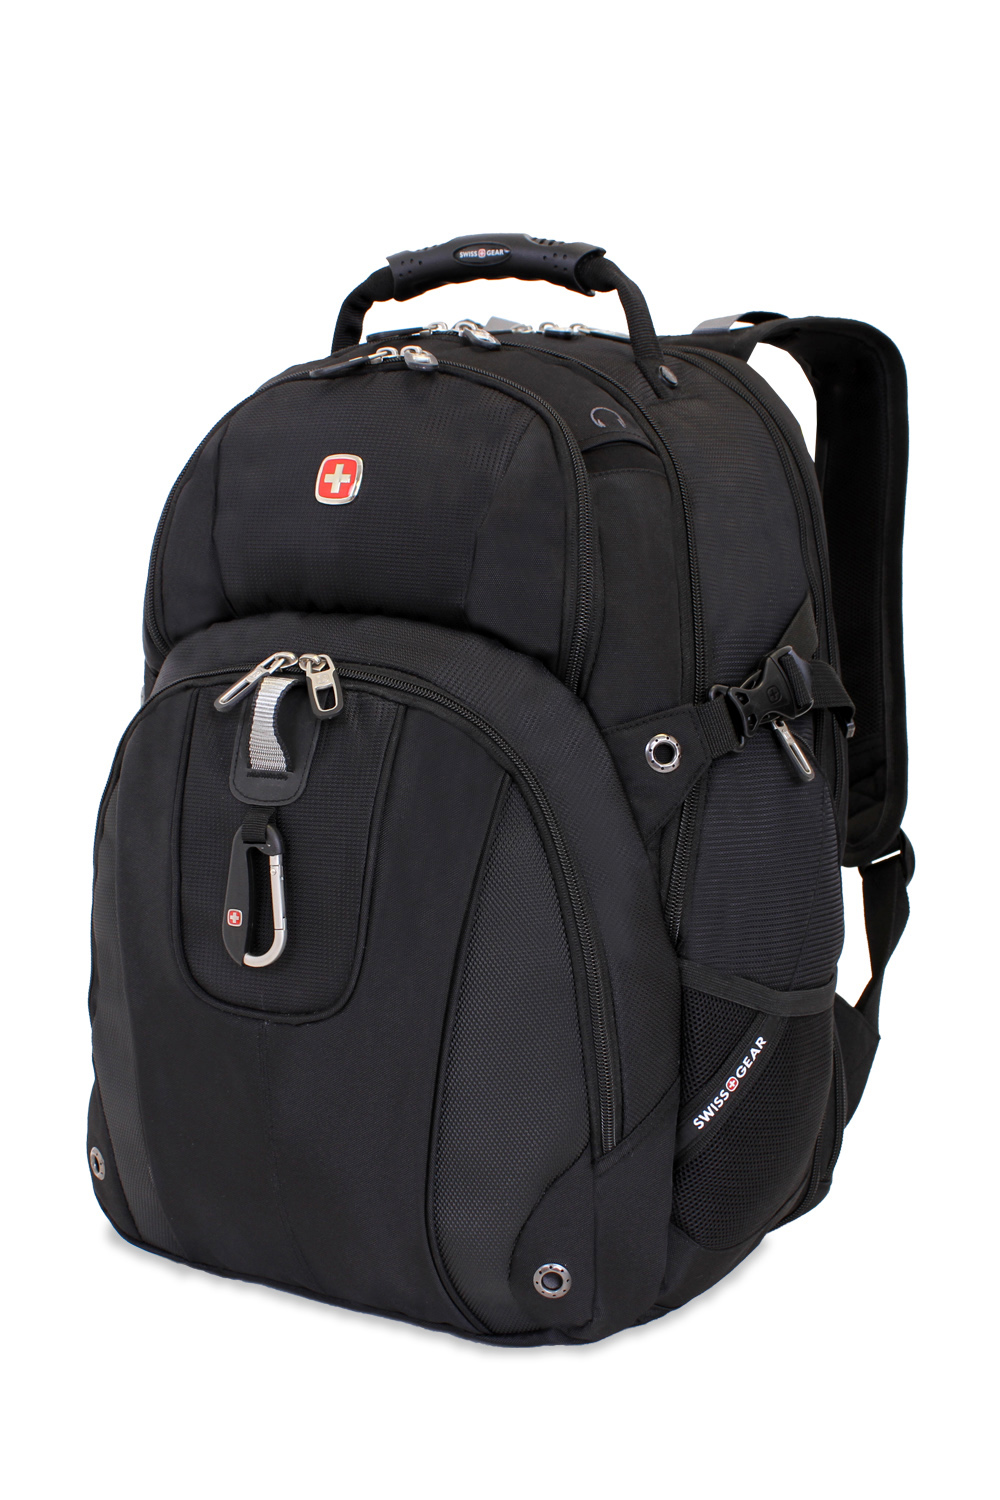 Swissgear City Pack Backpack - Motorslist